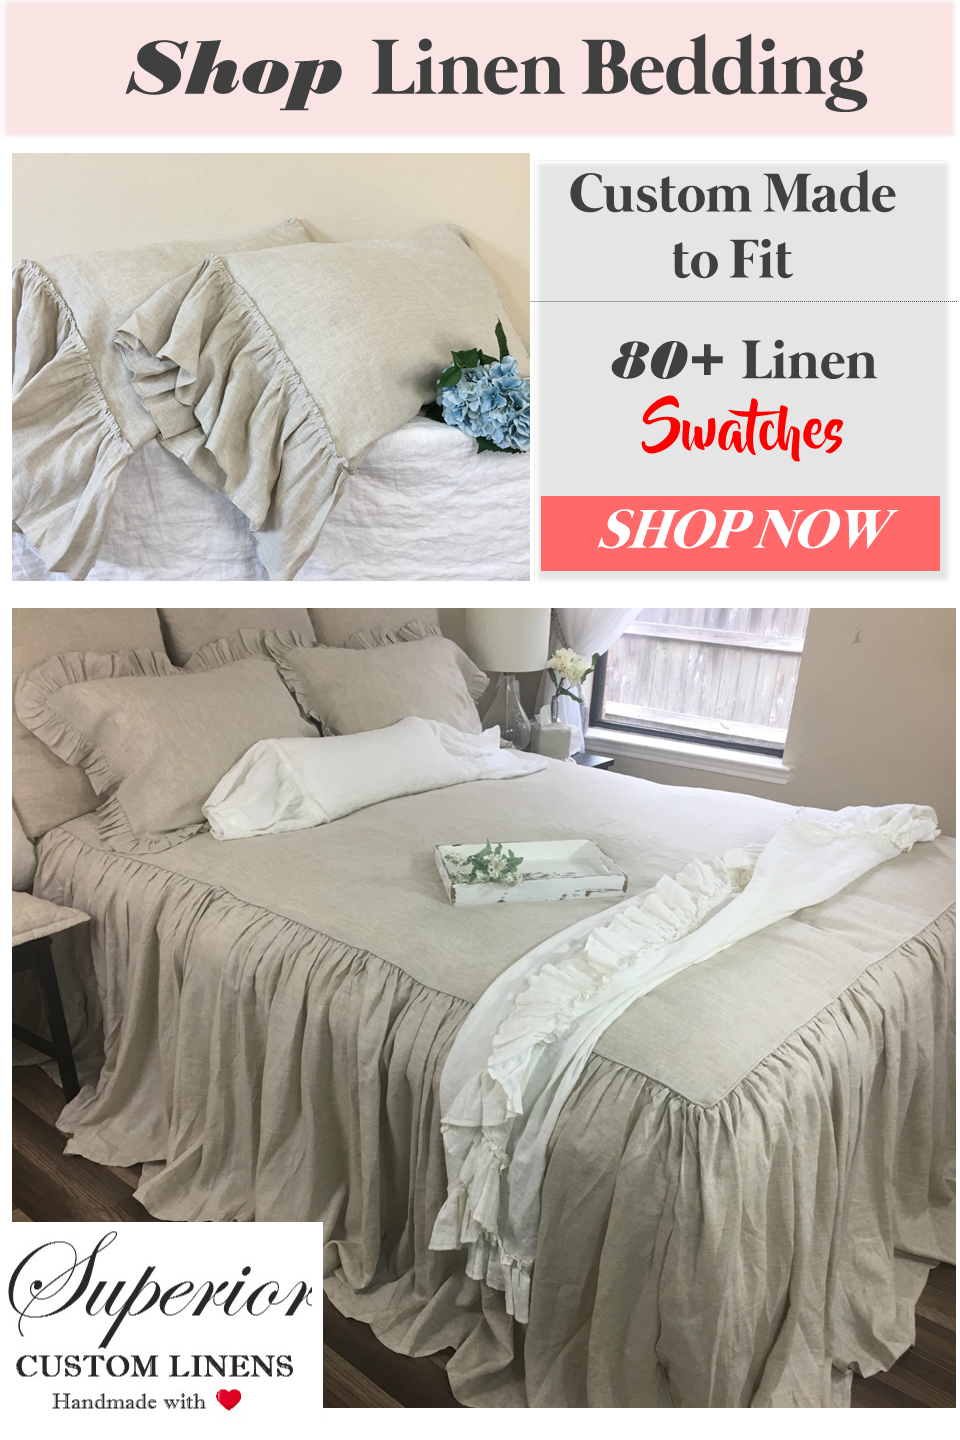 Shop Linen Bedspread And More Made To Fit 80 Linen Swatches Bed Spreads Shabby Chic Bedding Bedroom Design Inspiration